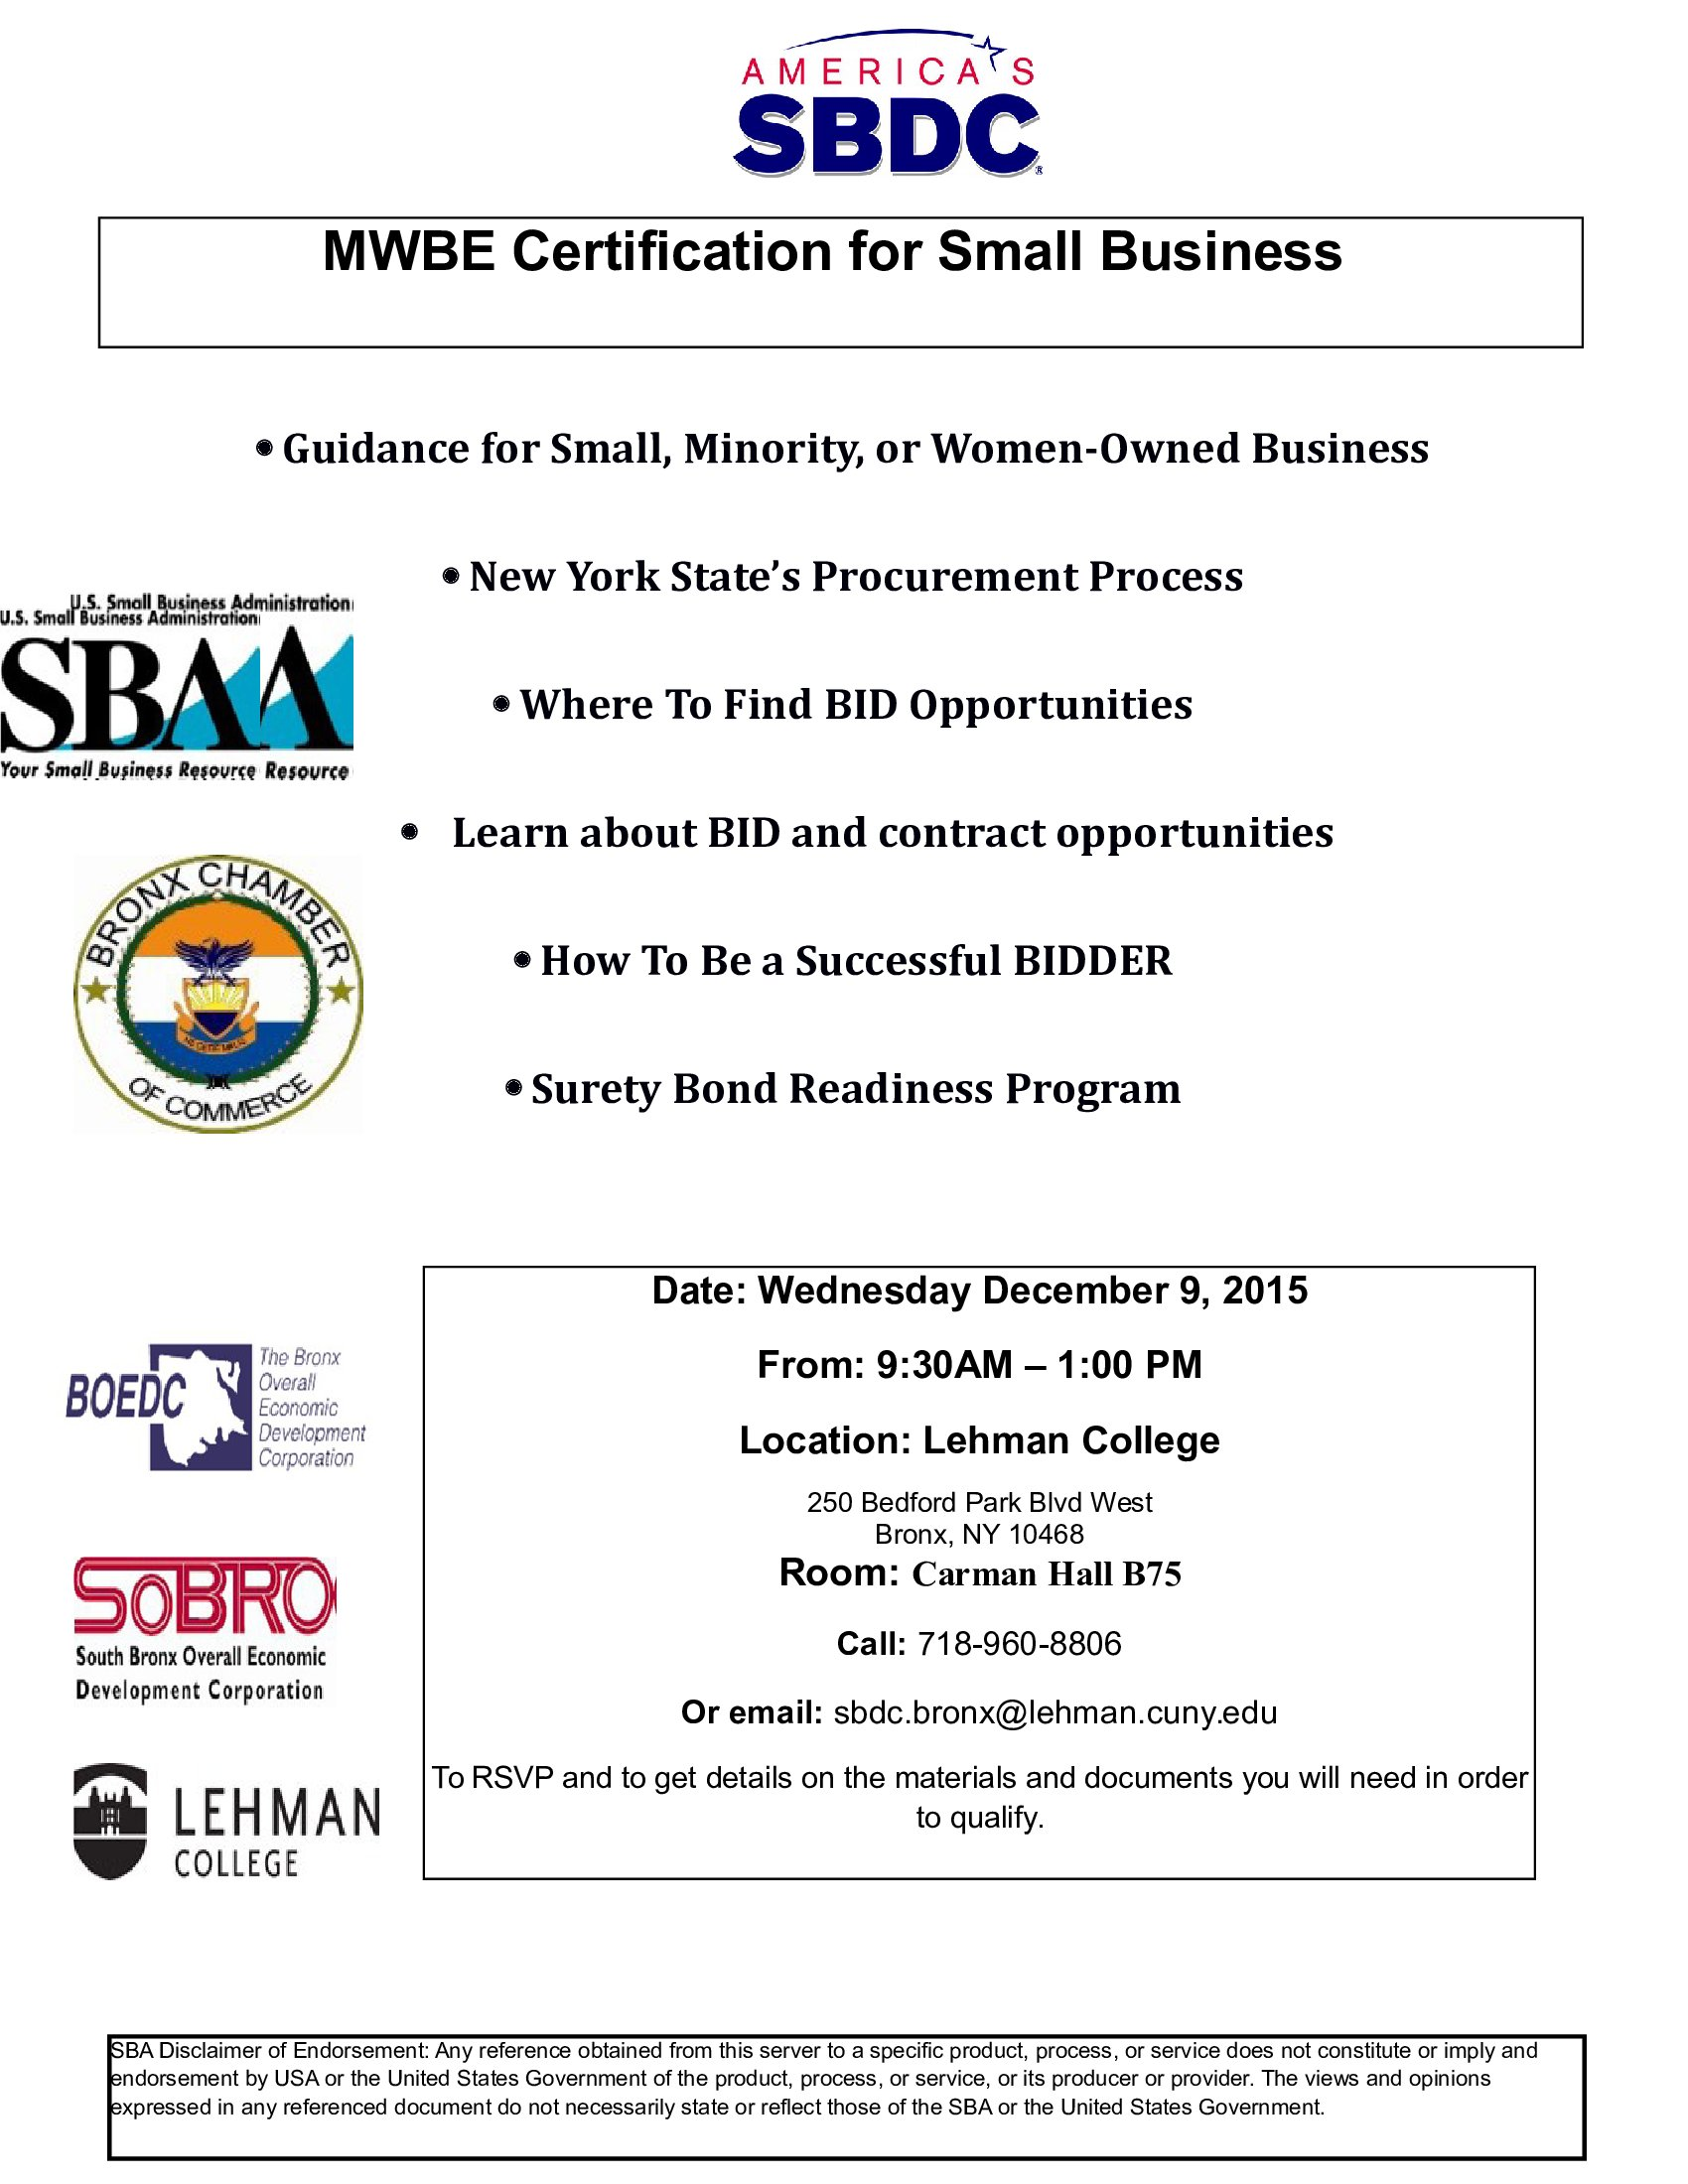 Mwbe Certification For Small Busines 1292015 Lehman College